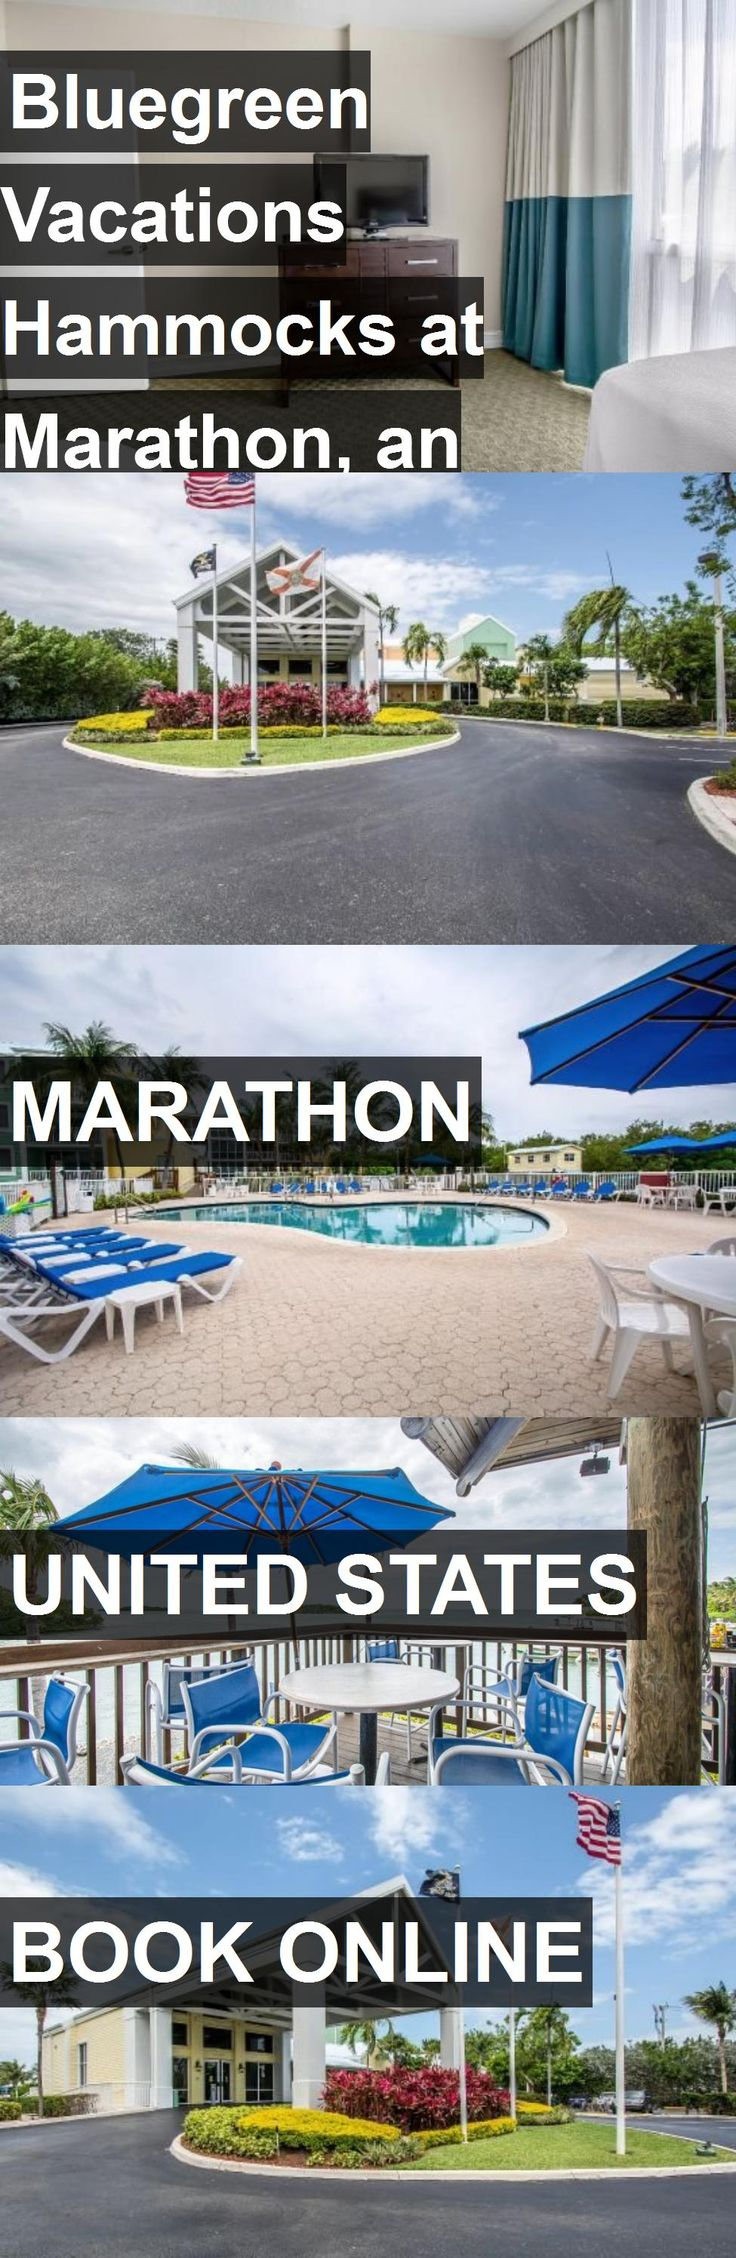 Hotel Bluegreen Vacations Hammocks at Marathon, an Ascend Resort in Marathon, United States. For more information, photos, reviews and best prices please follow the link. #UnitedStates #Marathon #travel #vacation #hotel